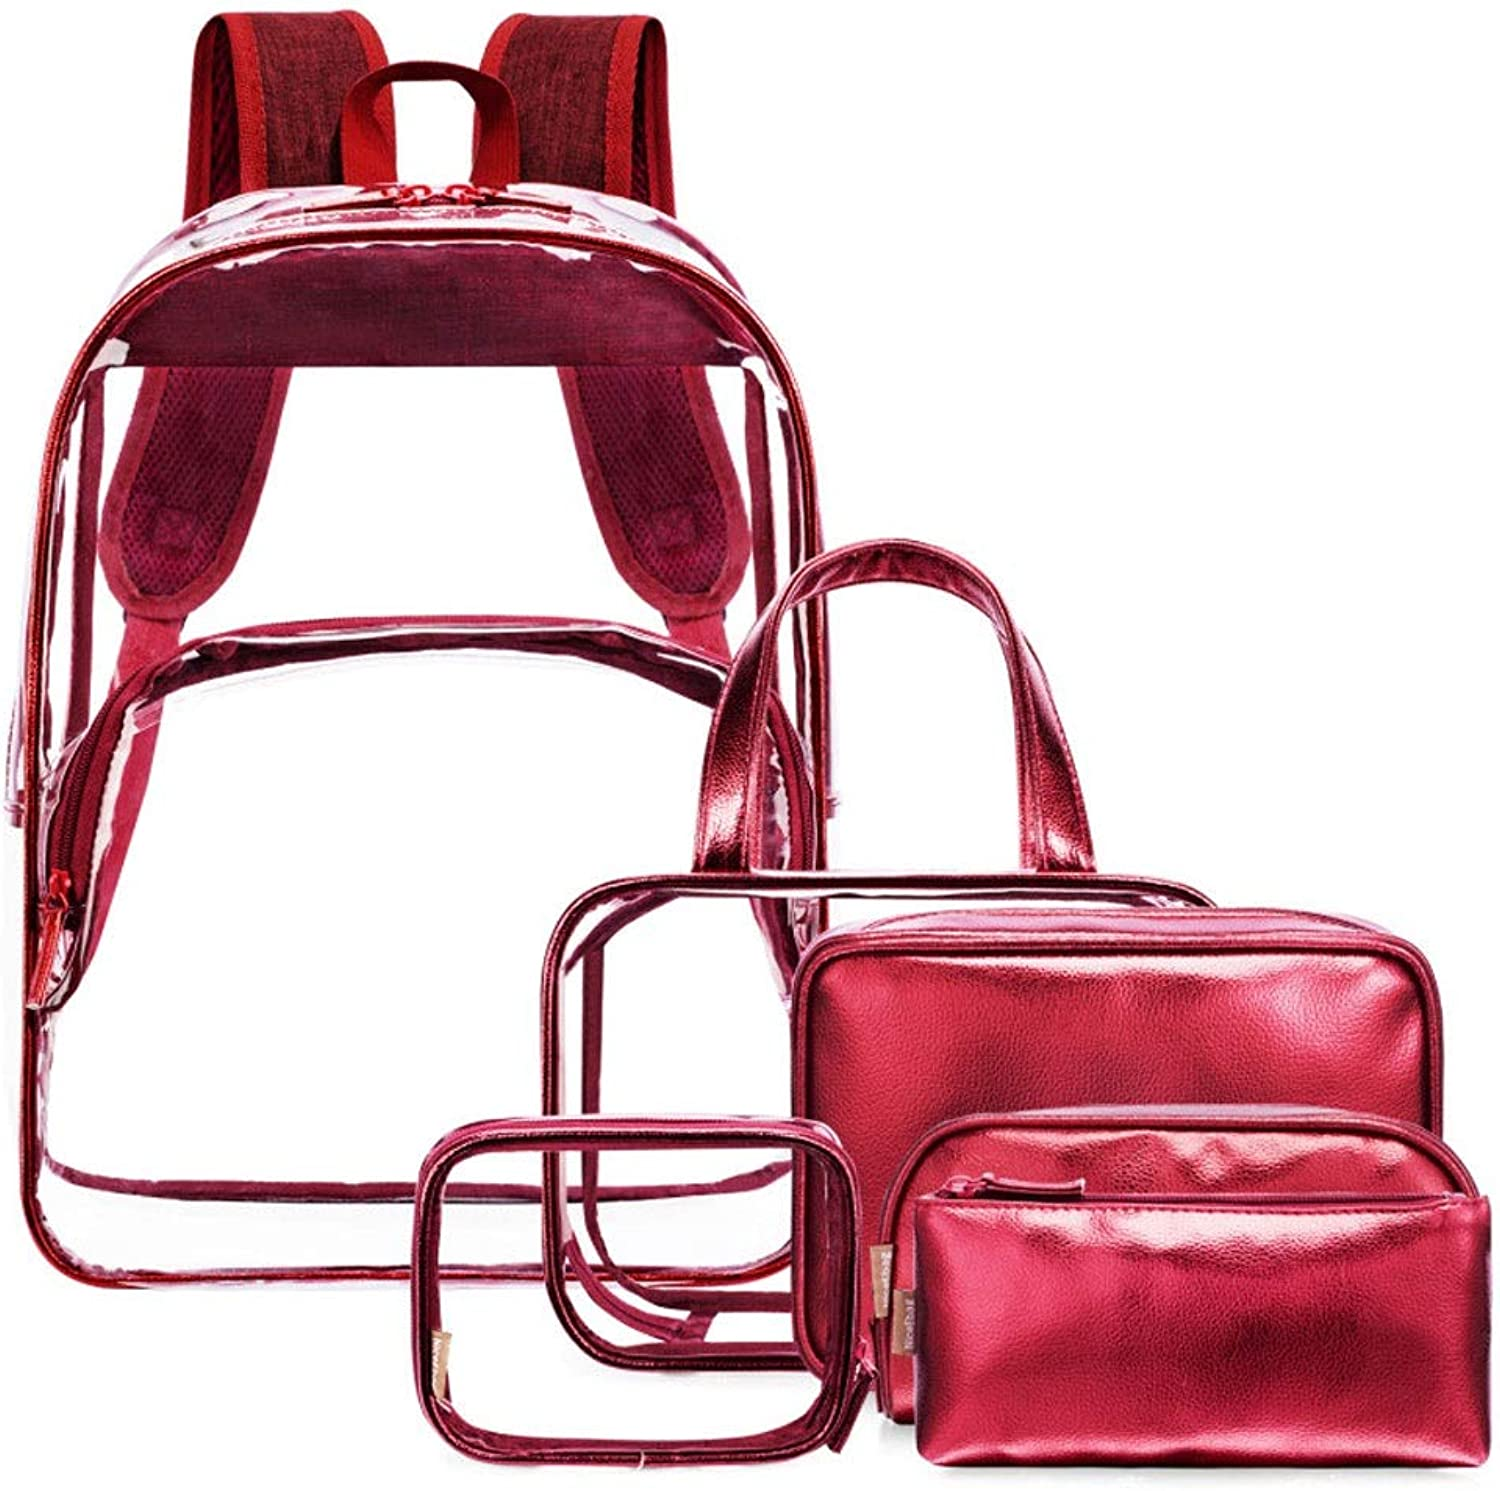 6Piece Transparent Backpack Female Fashion Personality Rucksack Makeup Bag Set PVC Travel Daypack (color   Red)